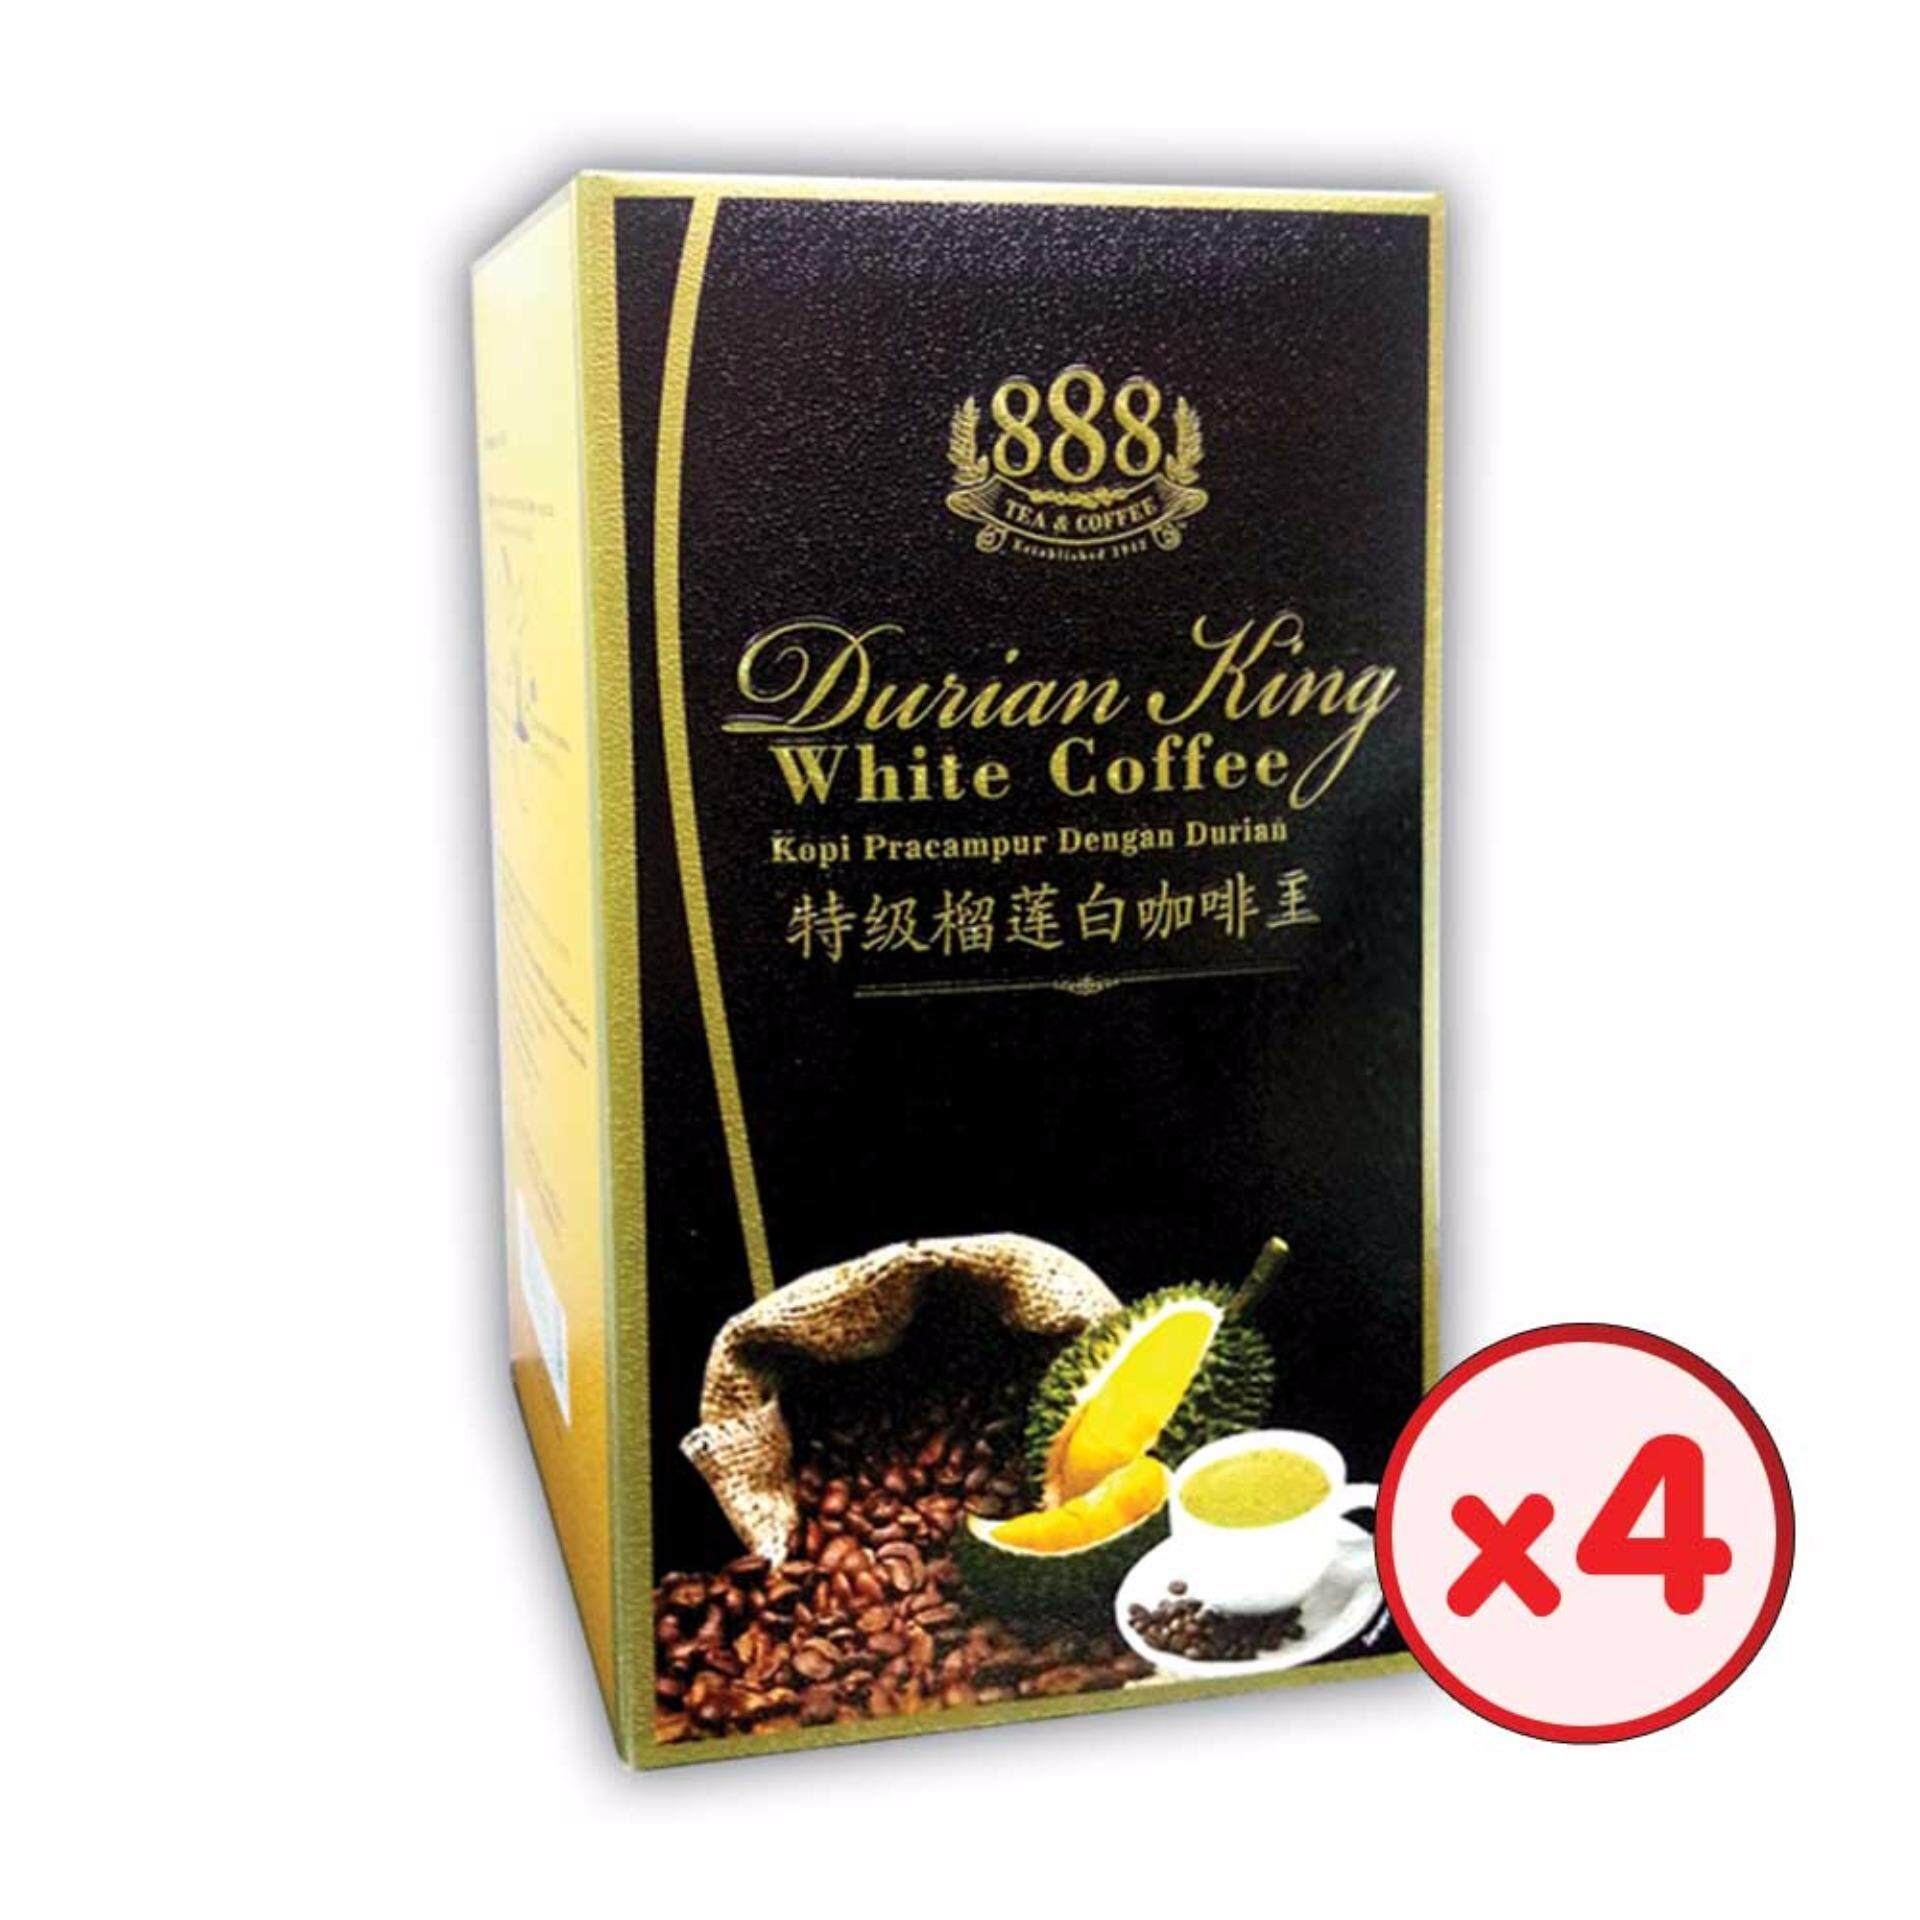 888 3 In 1 Instant Durian King White Coffee (30g x 10 Sticks) - [Bundle of 4]